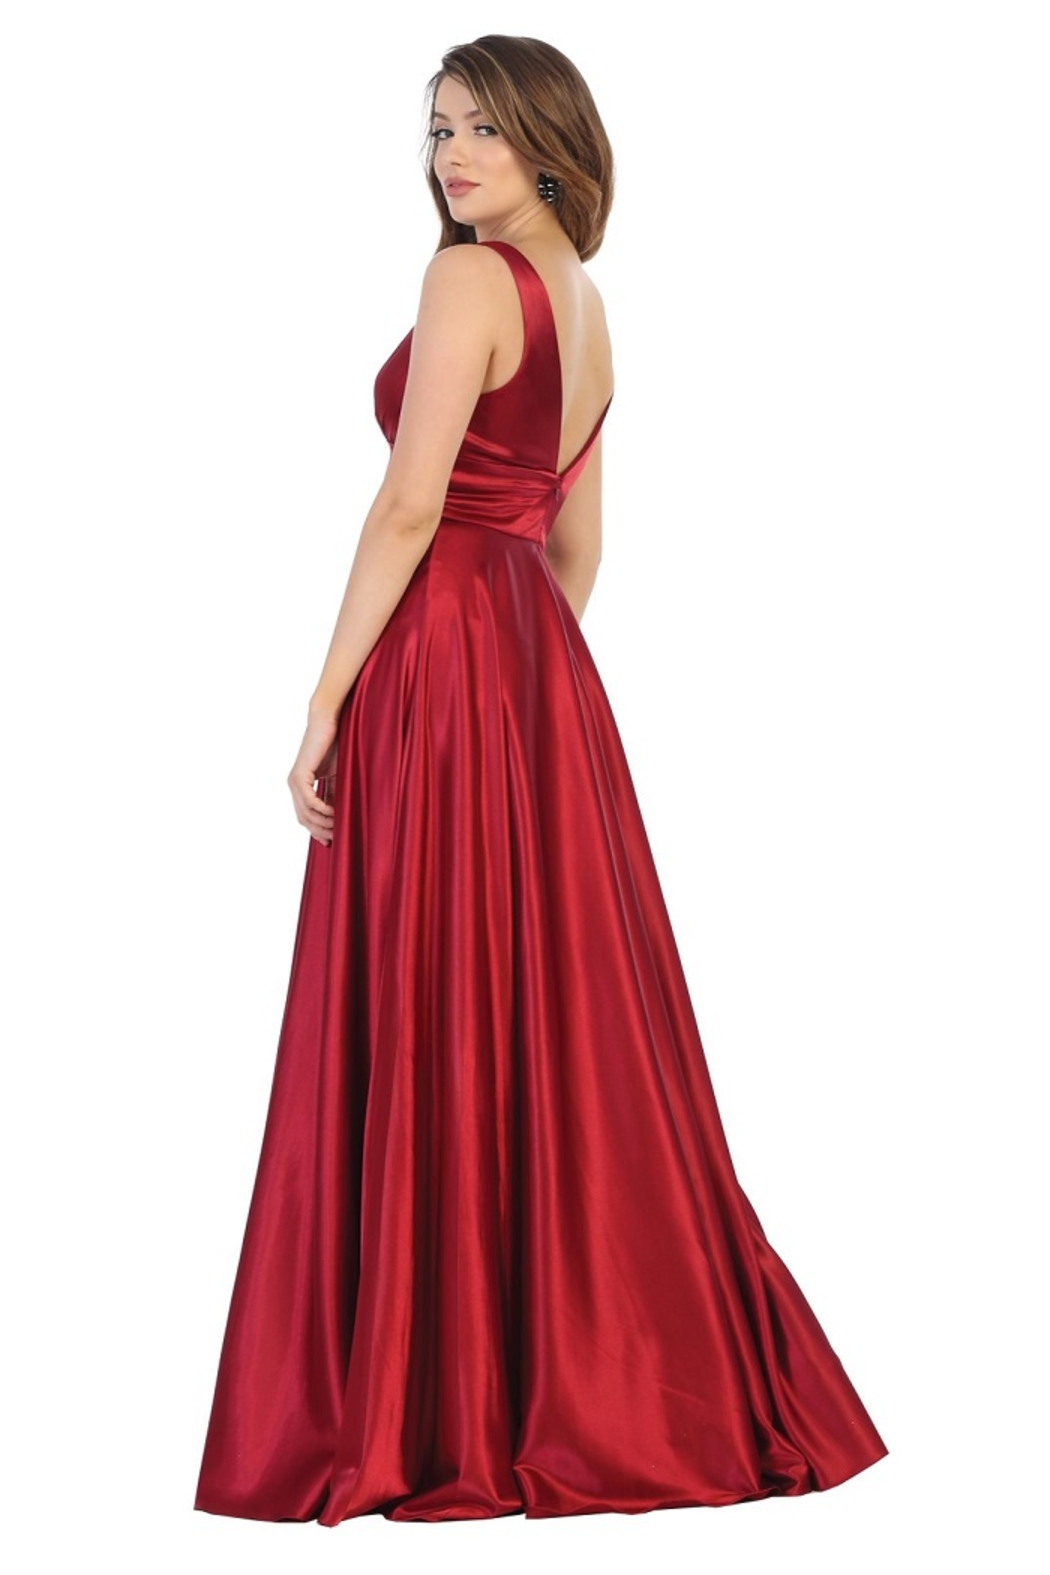 May Queen  Red Satin A-Line Formal Long Dress - Front Full Image